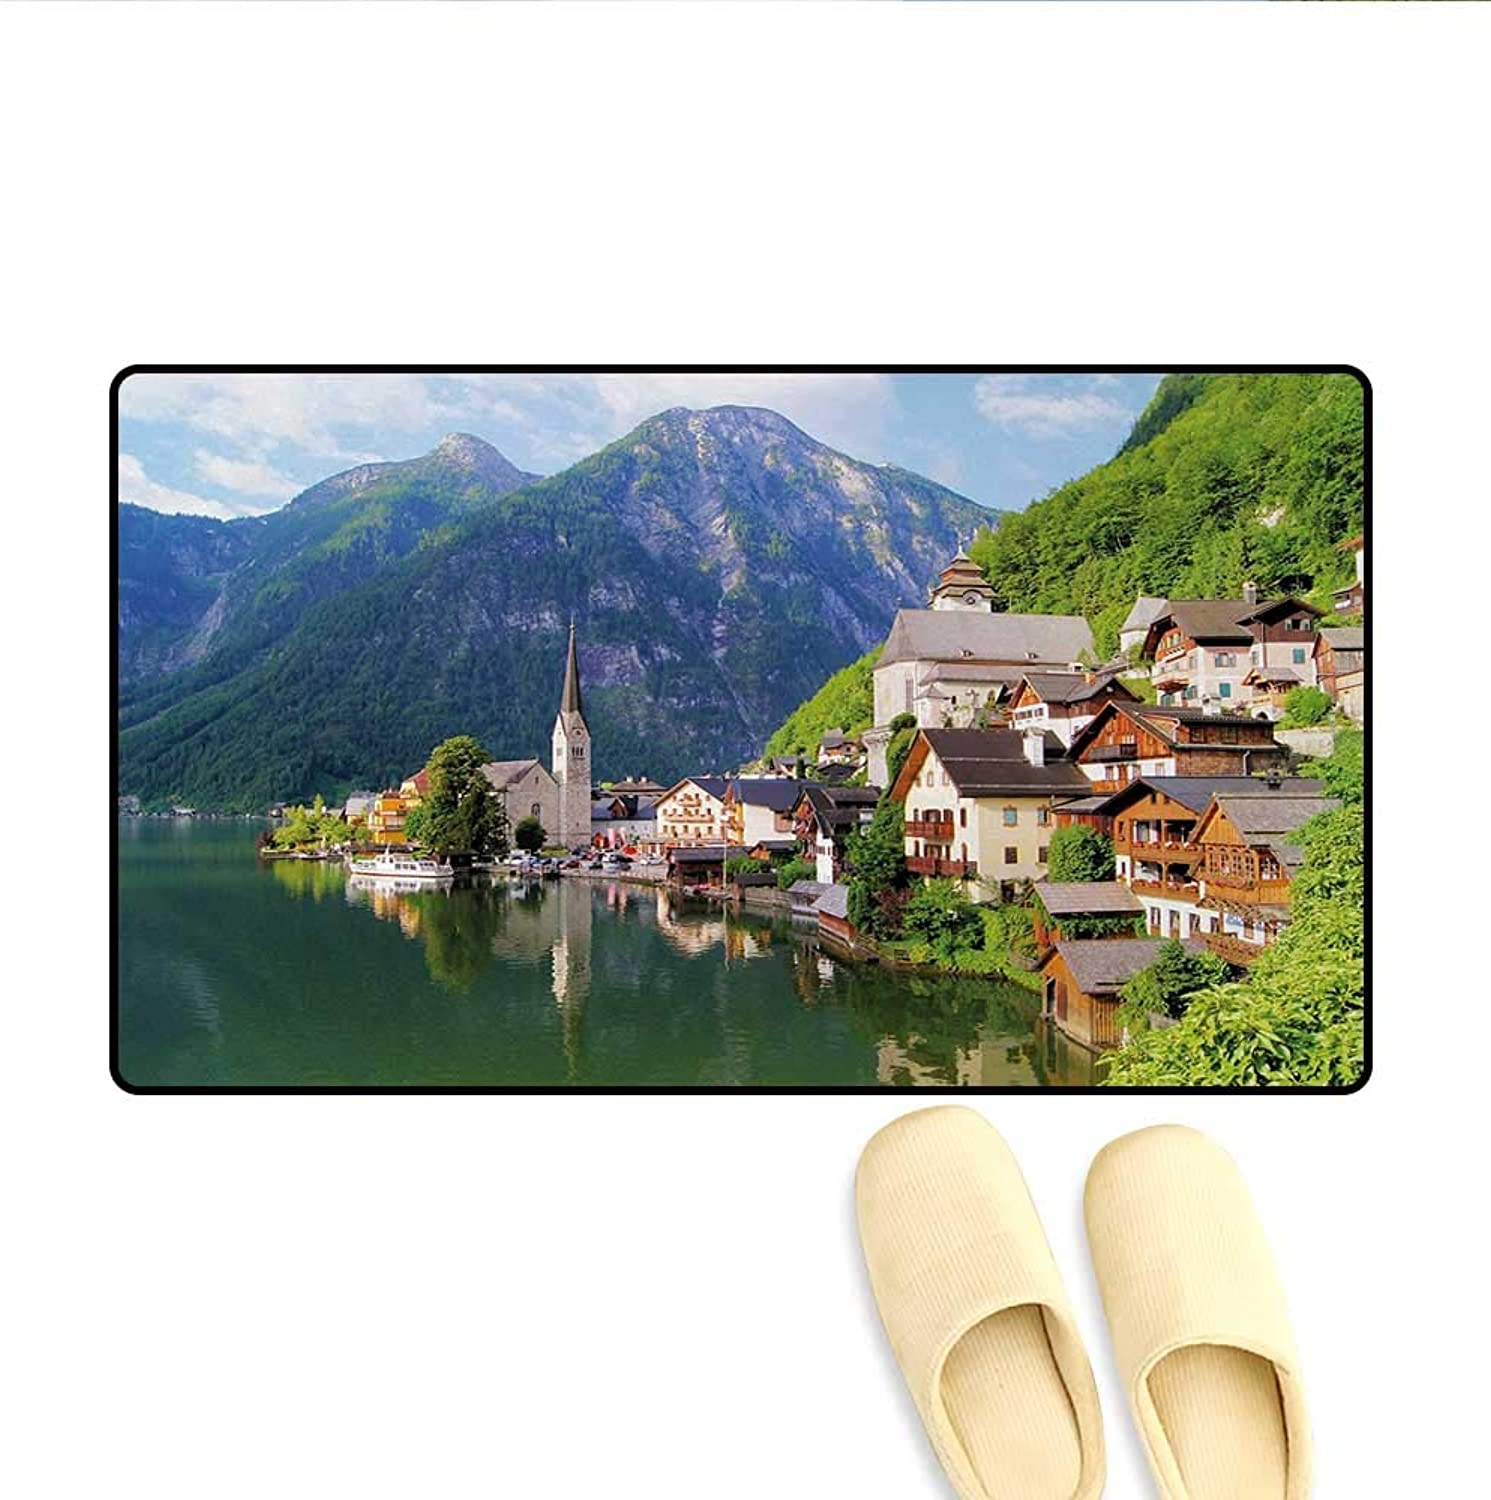 Door-mat,Idyllic Alps Village Small Town by Majestic Mountain Lake European Pastoral Scenery,Door Mats for Inside Bathroom Mat Non Slip,Multicolor,Size 32 x48